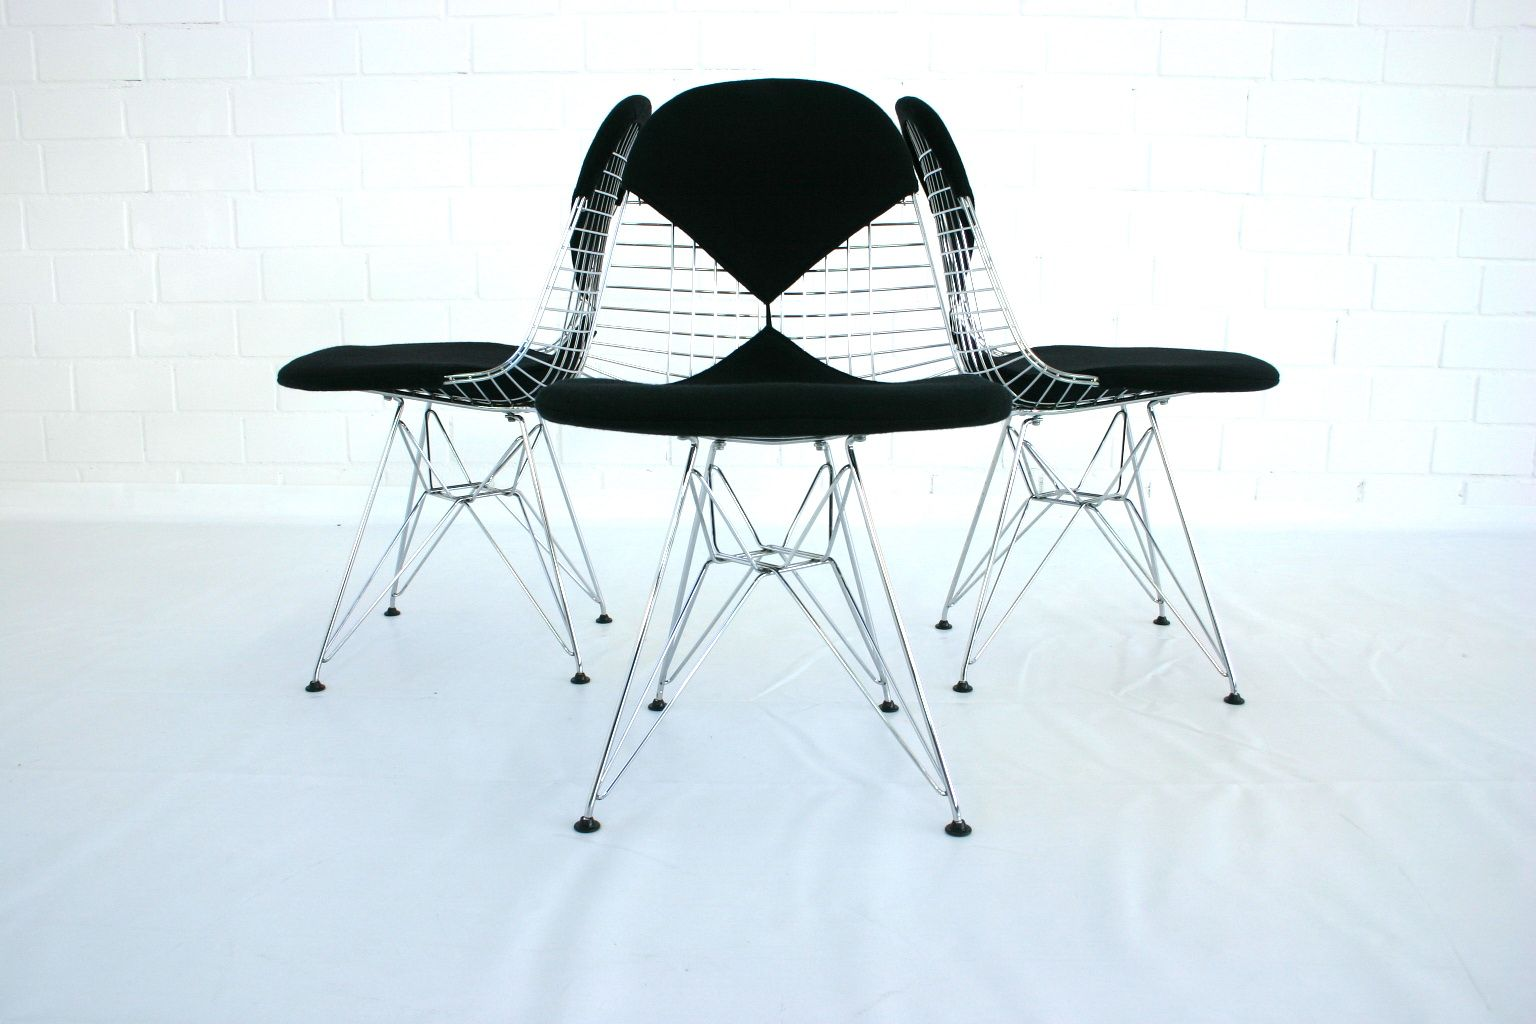 Dkr 2 eiffel tower wire chair by charles eames for vitra for Eiffel chair de charles eames